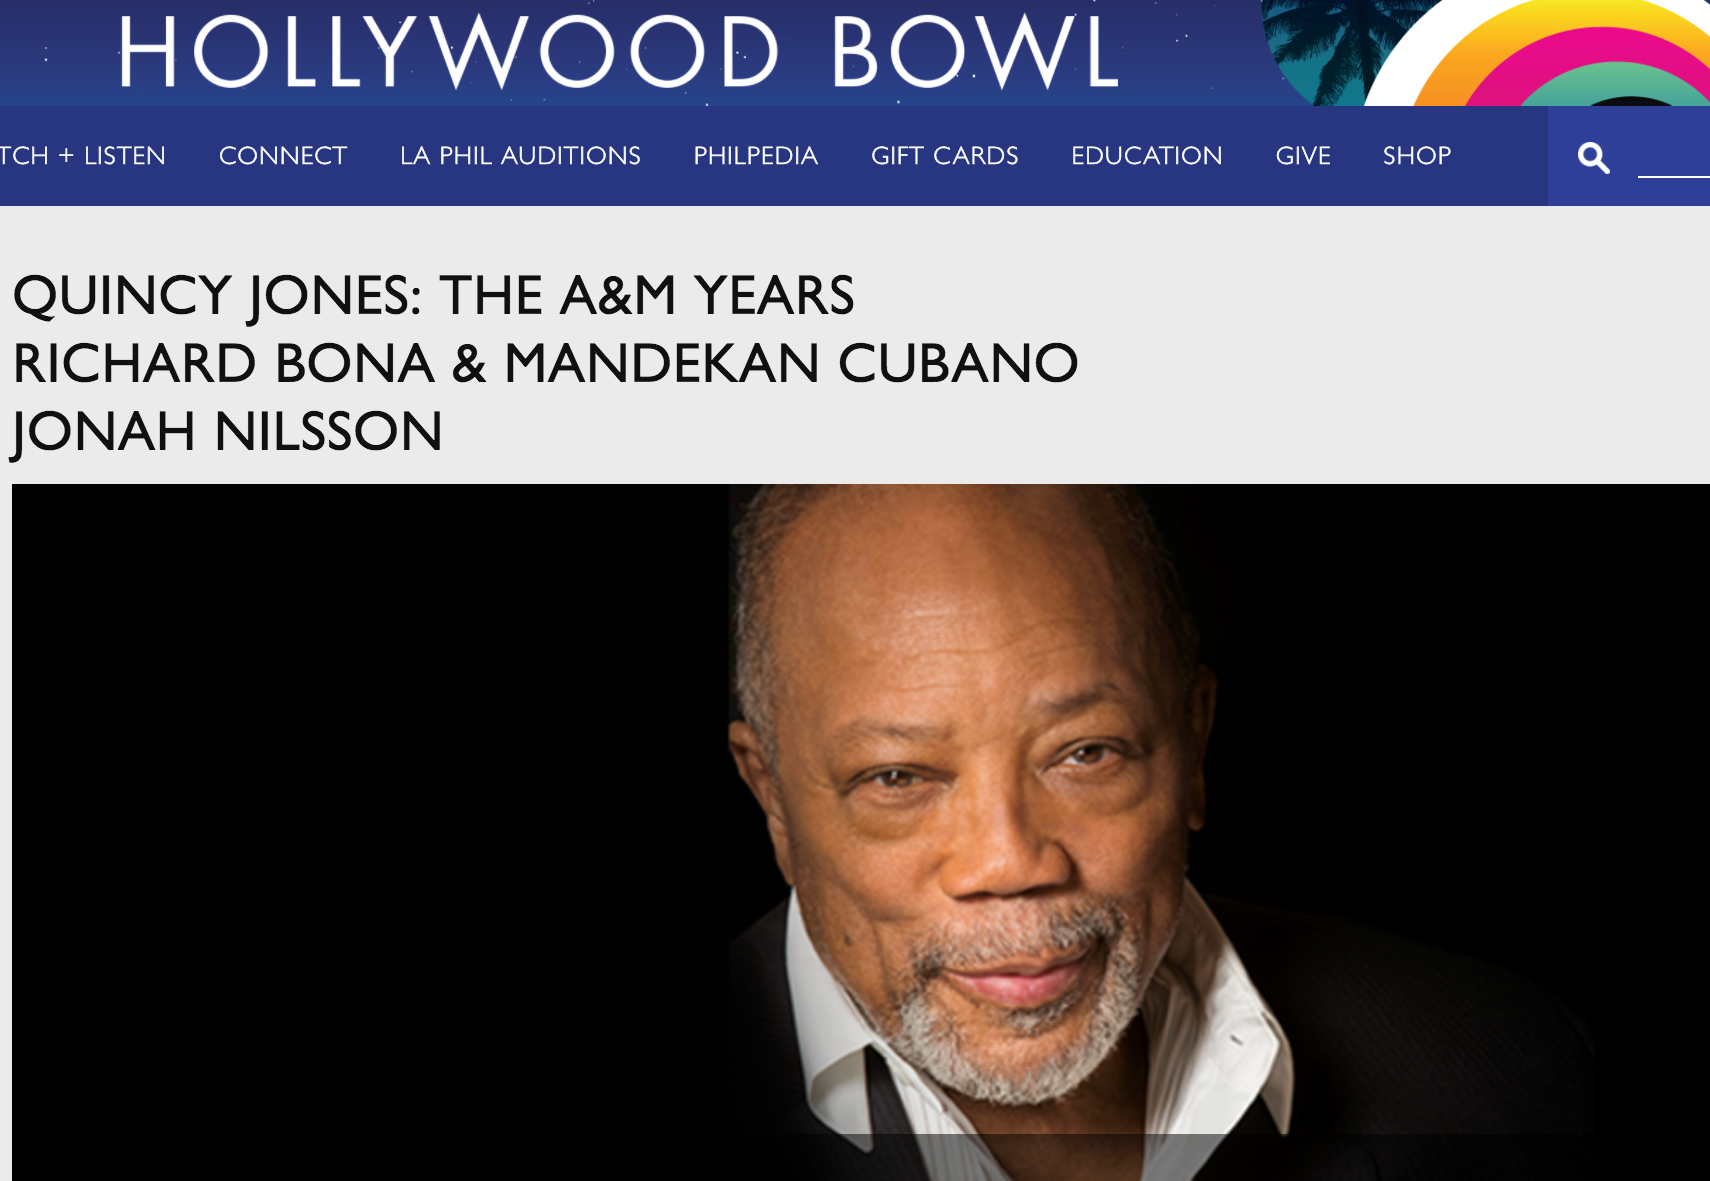 Quincy Jones at the Hollywood Bowl